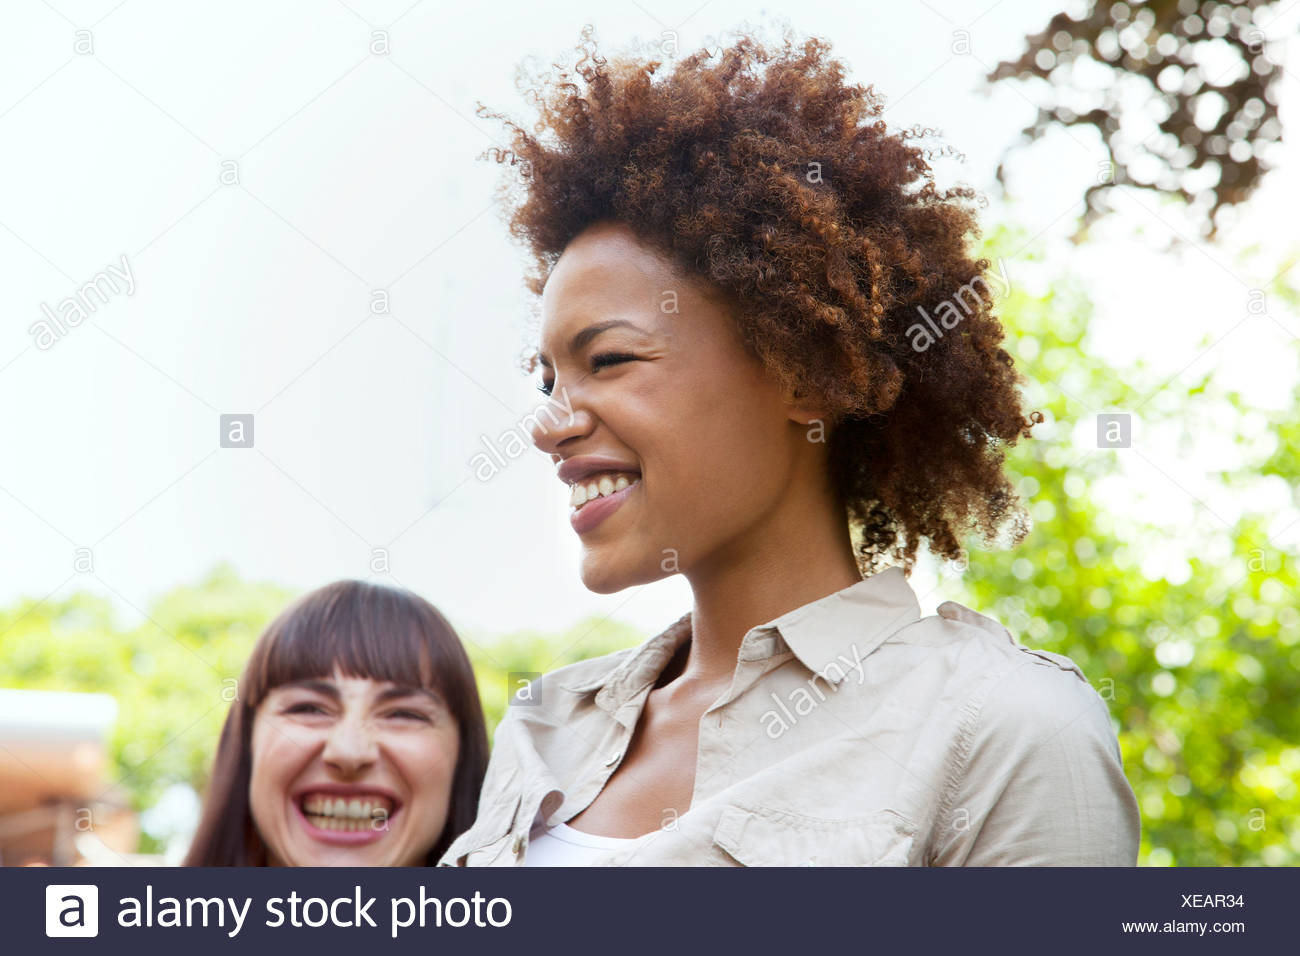 Portrait of young woman laughing with afro hairstyle - Stock Image